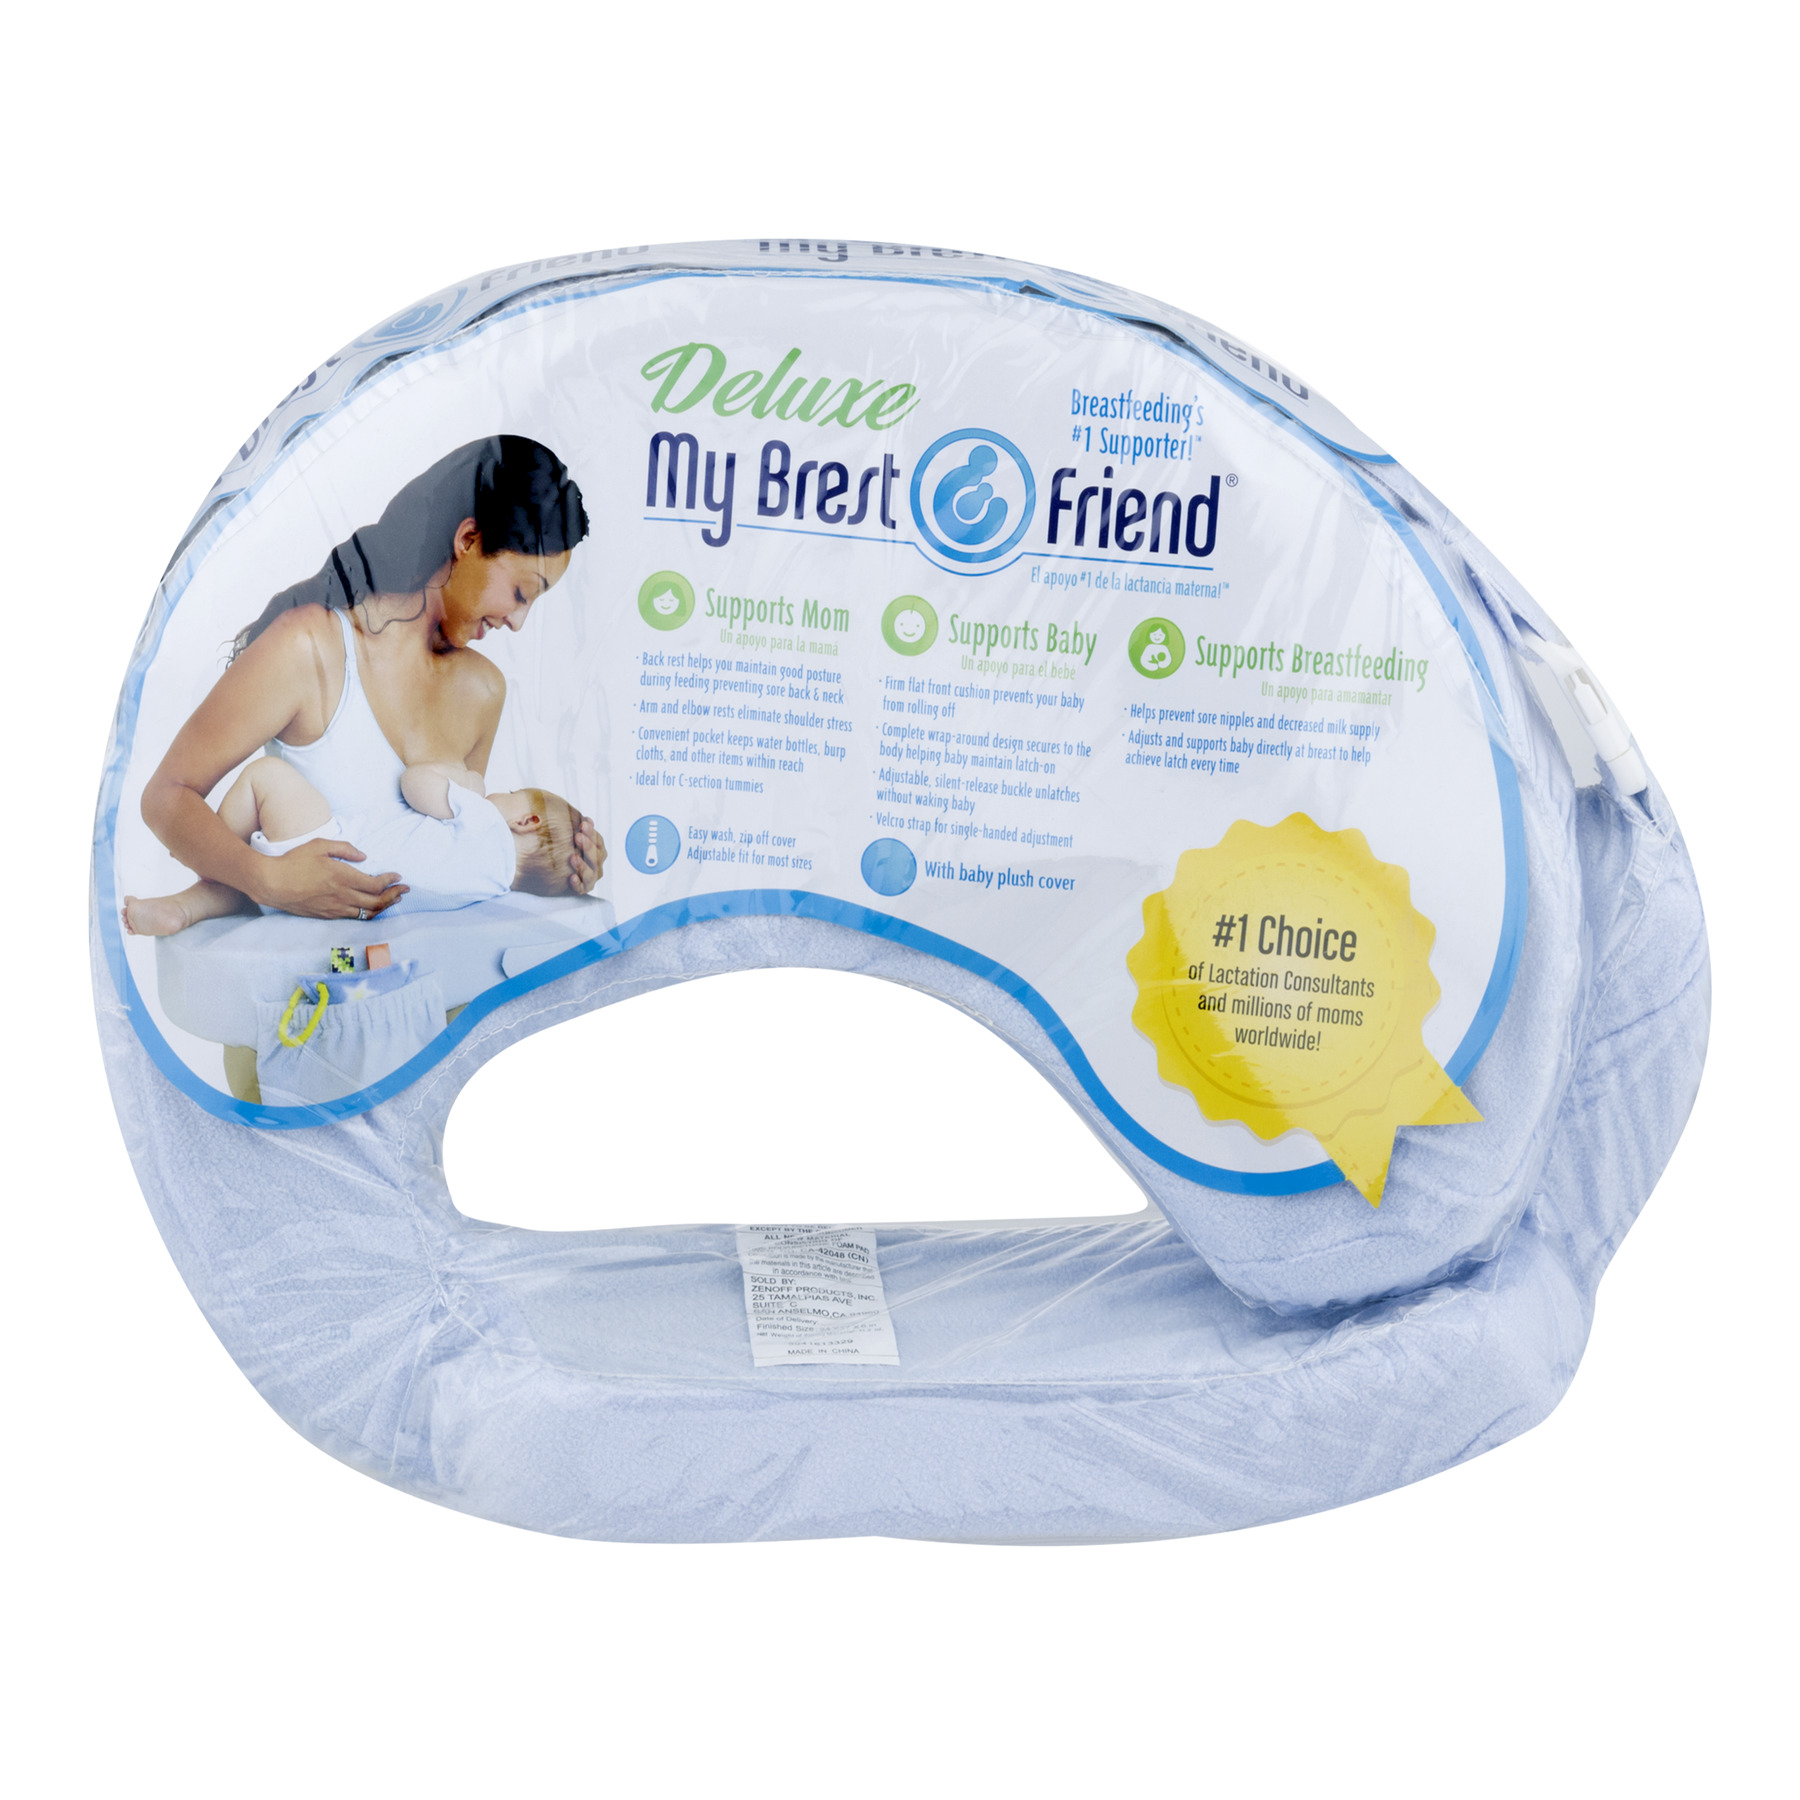 Deluxe My Brest Friend Breast Feeding Support - Blue, 1.0 CT